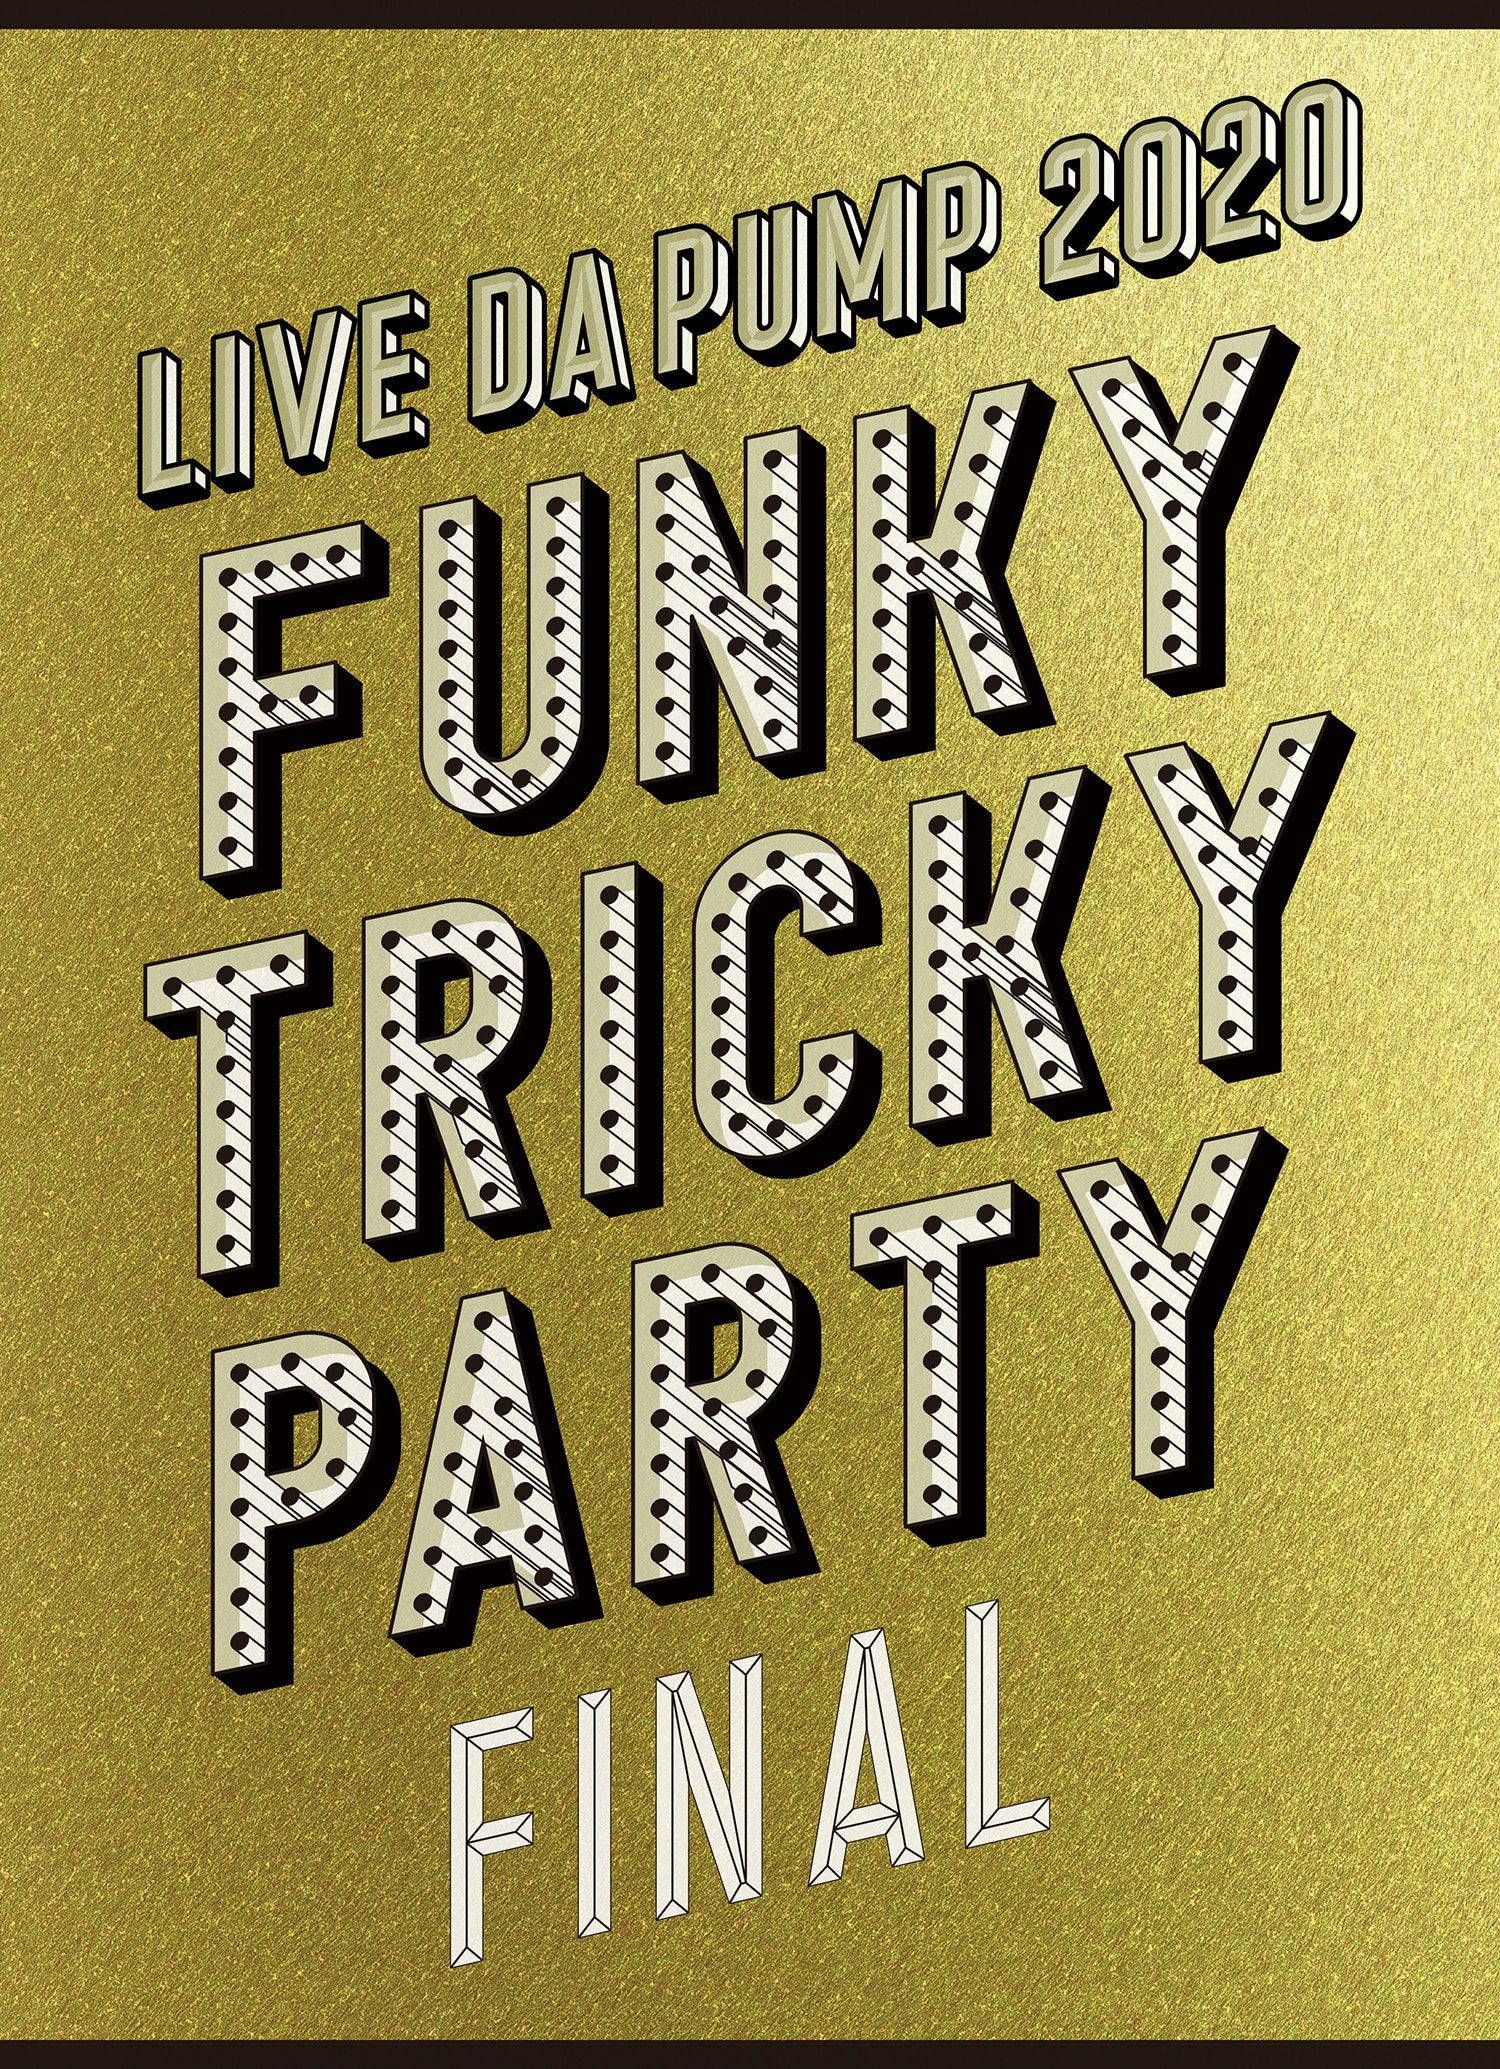 [3Blu-ray Disc+2CD+PHOTO BOOK+スマプラ・ムービー]「LIVE DA PUMP 2020 Funky Tricky Party FINAL at さいたまスーパーアリーナ」